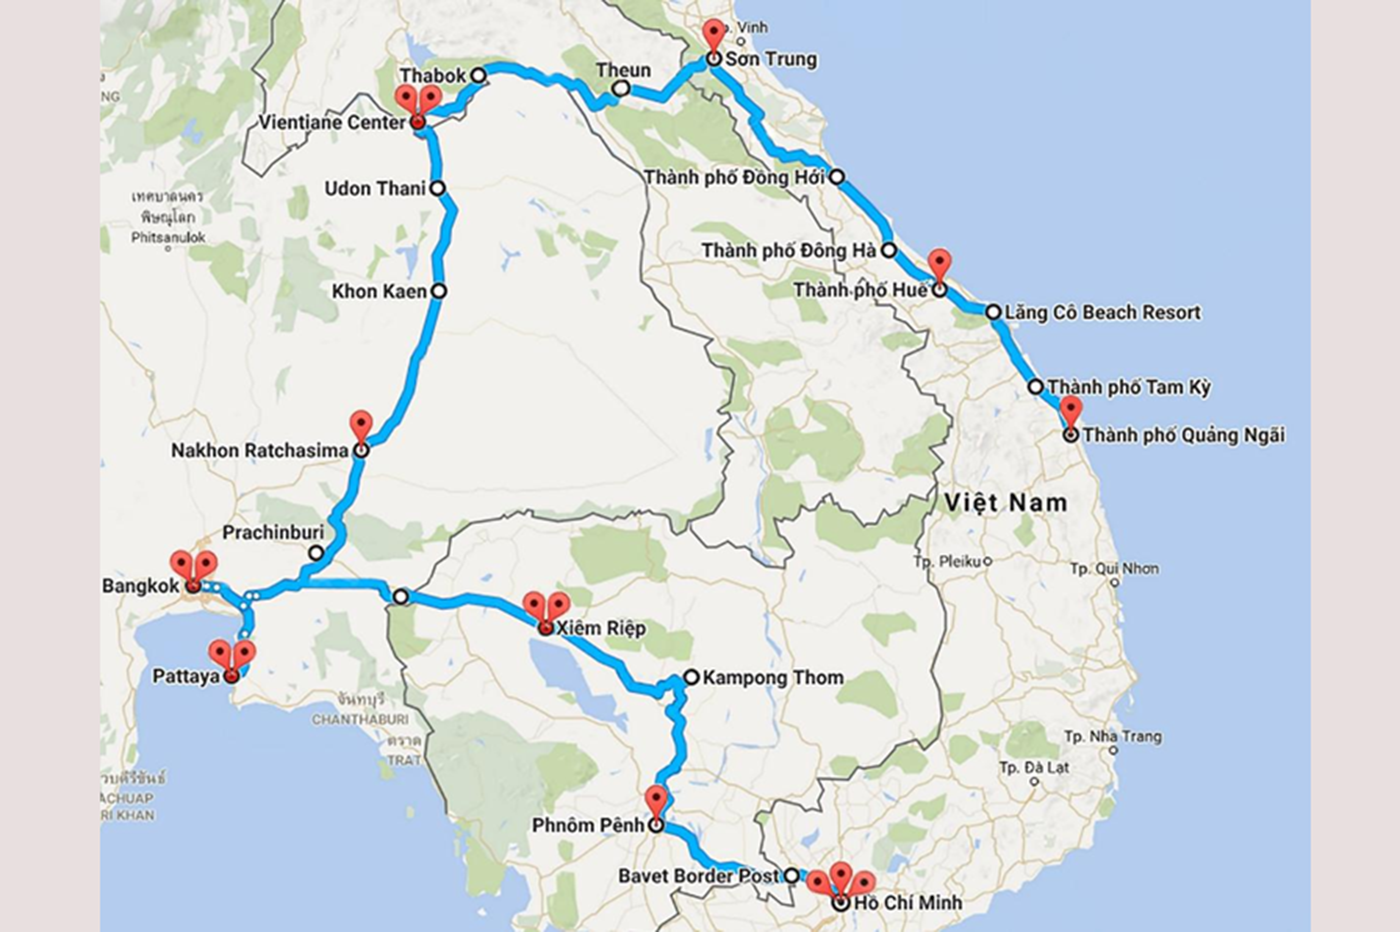 roadtrip-map-ex-touring-2017.png